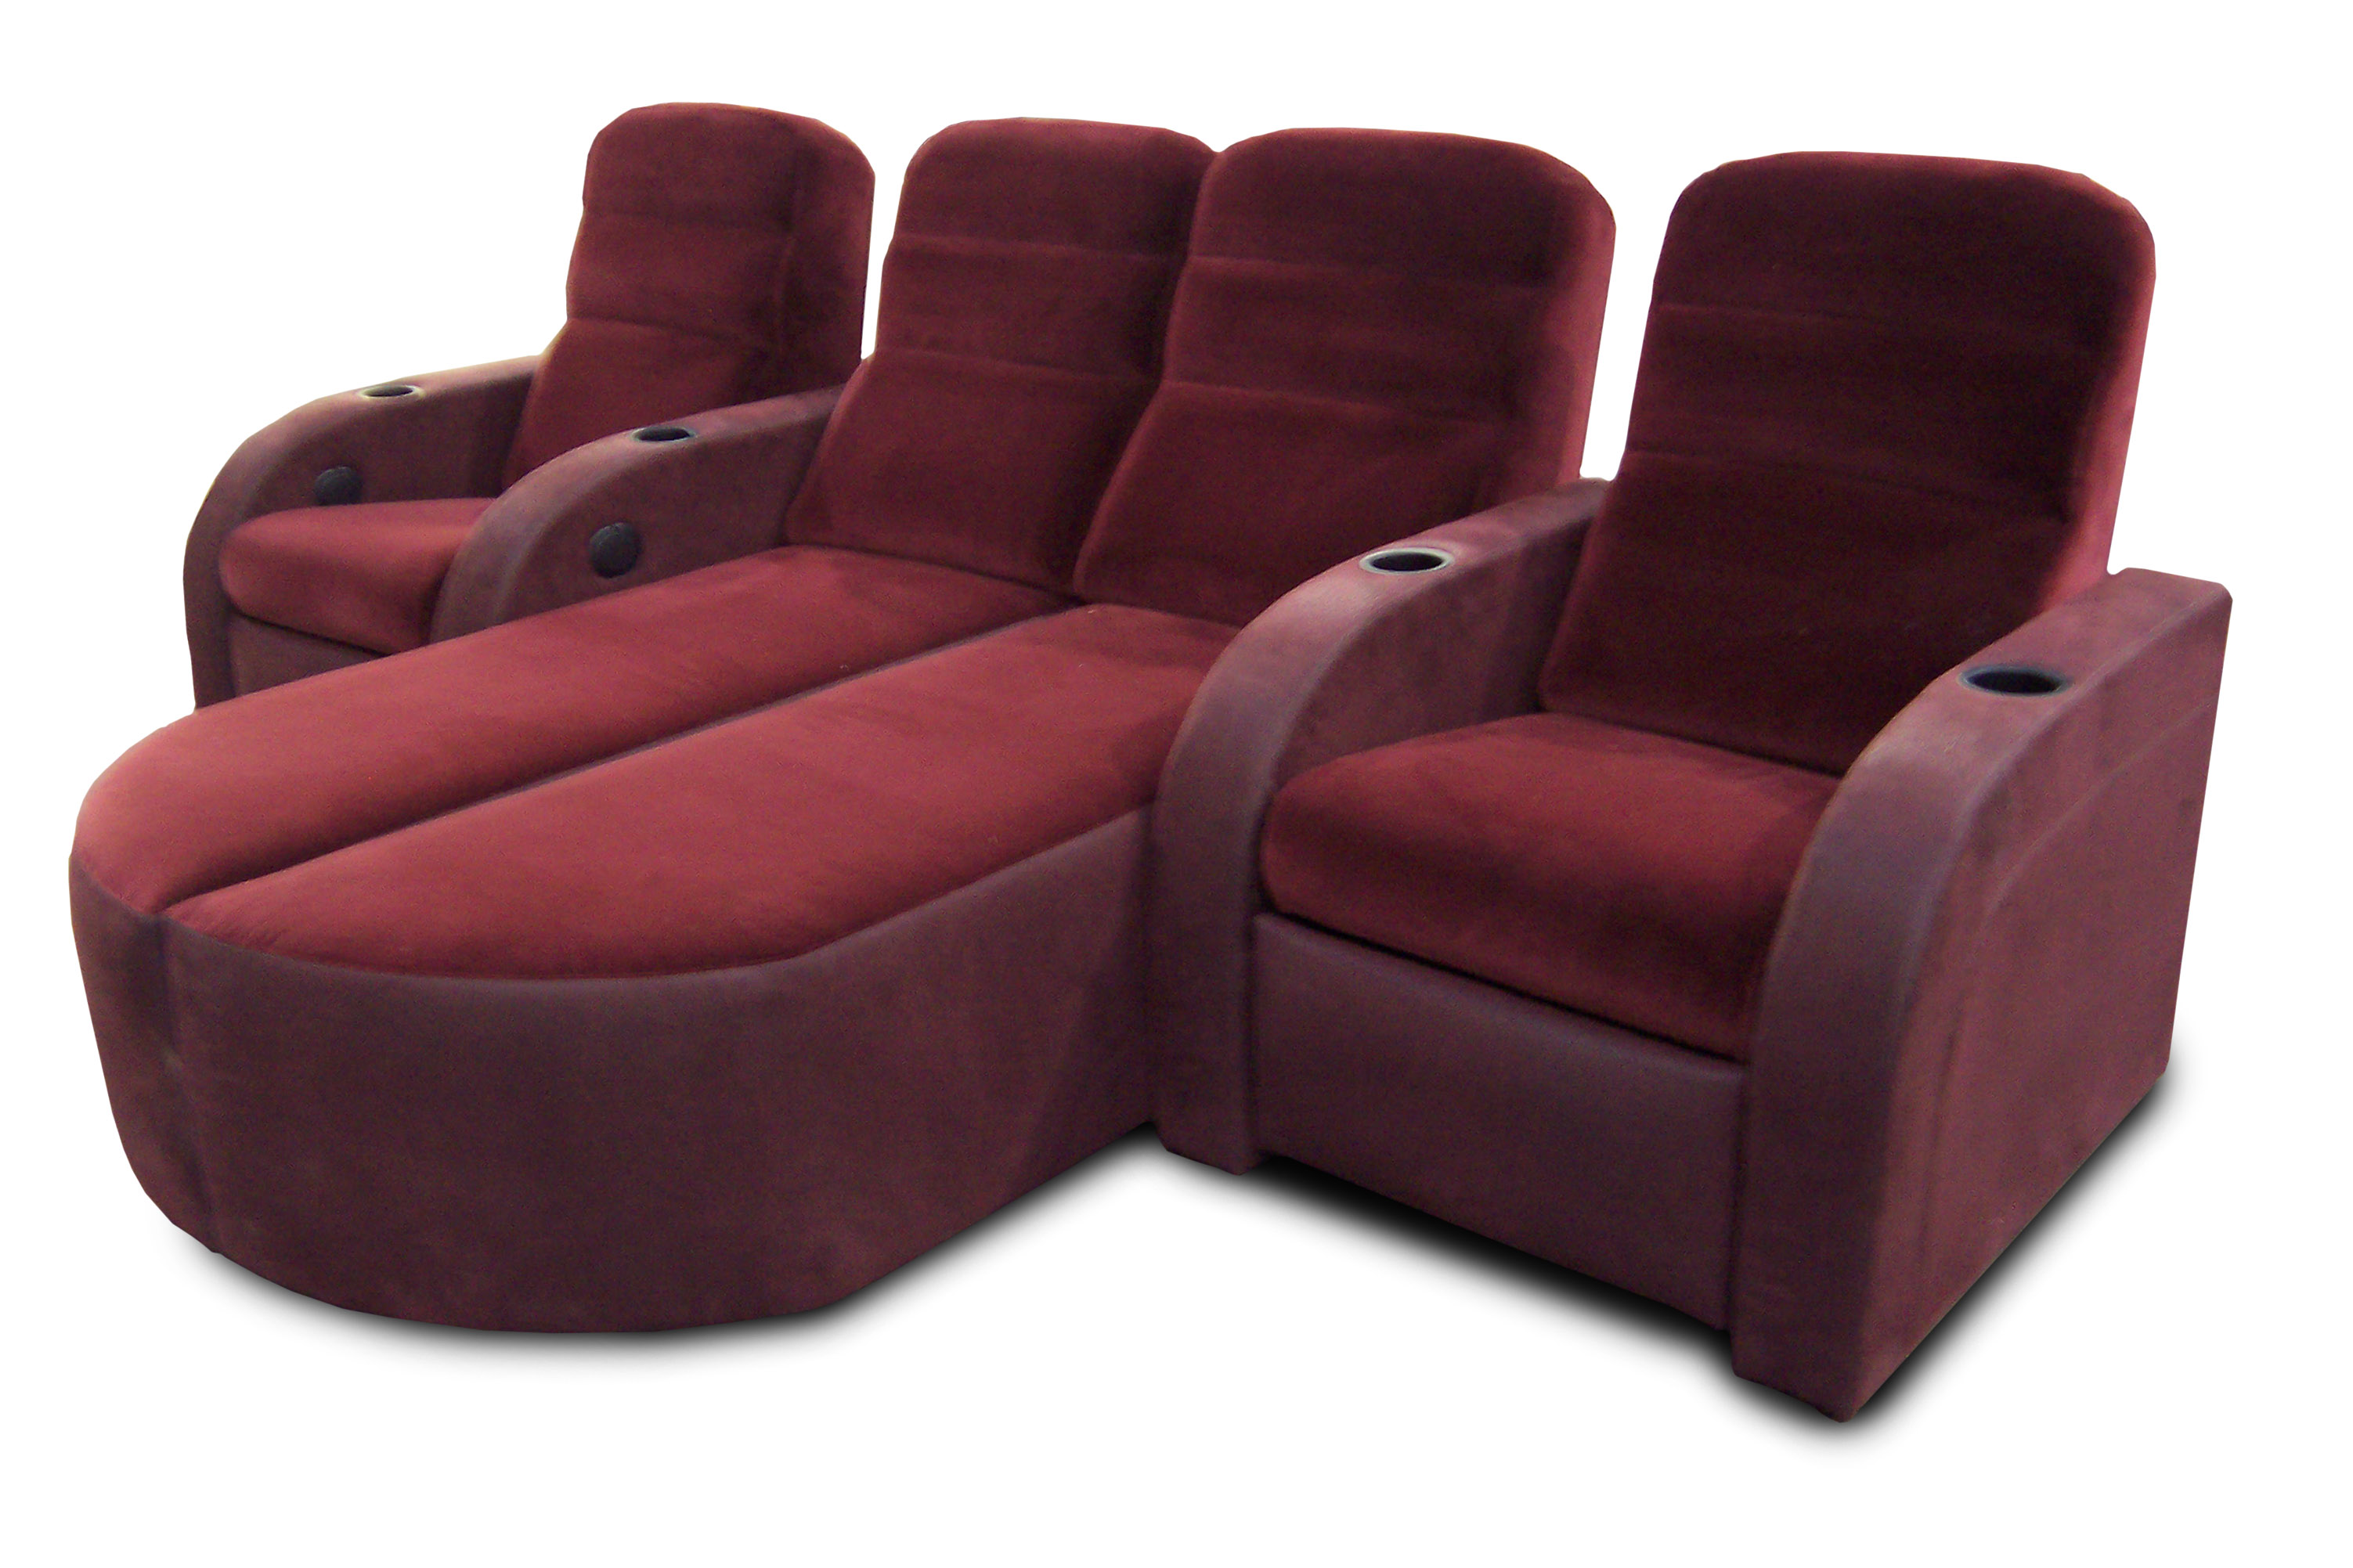 3 Seaters Recliners 2016